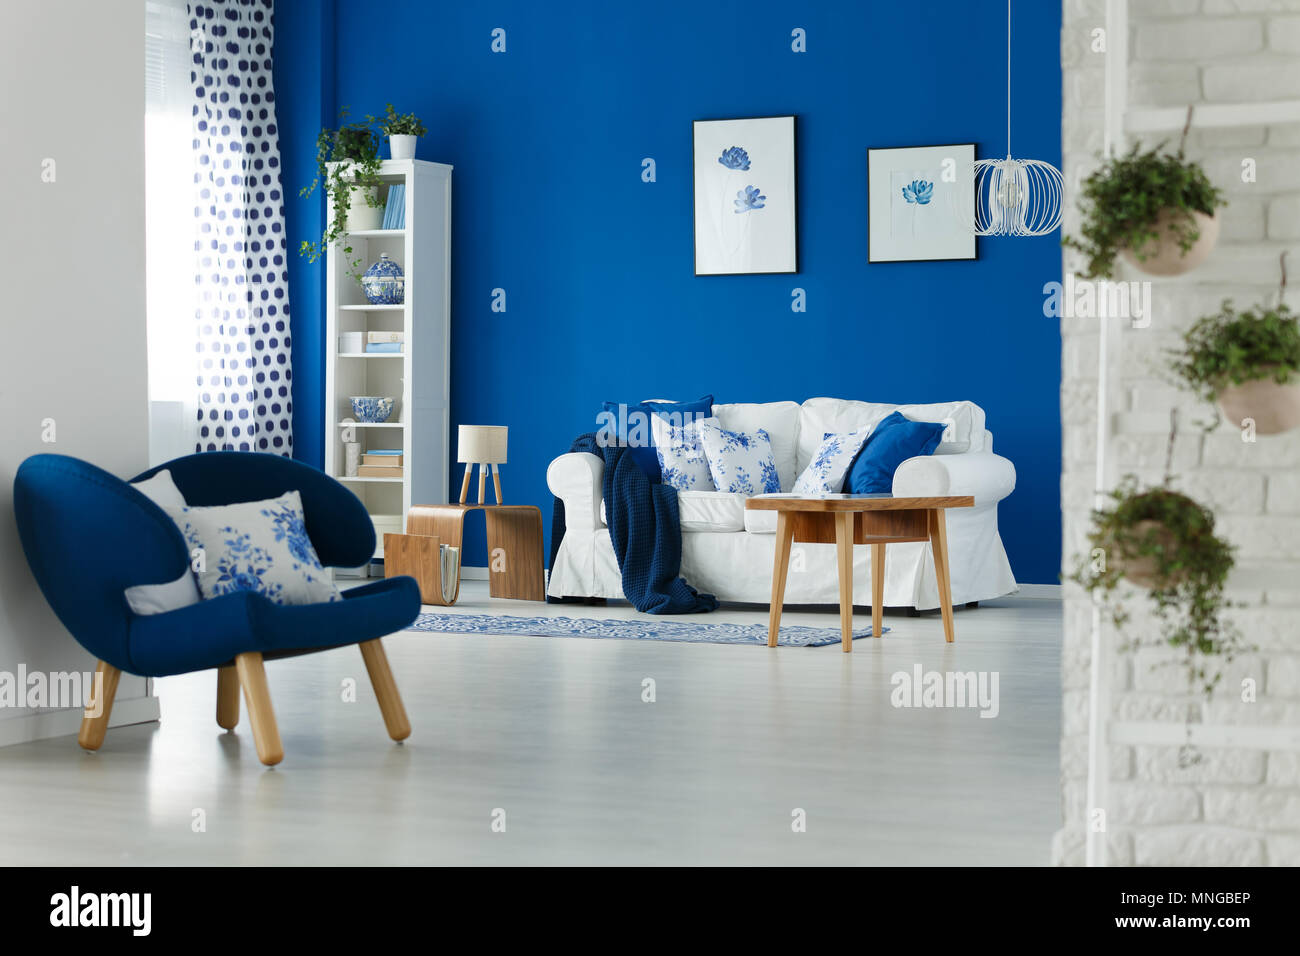 Trendy blue and white living room interior design Stock Photo - Alamy